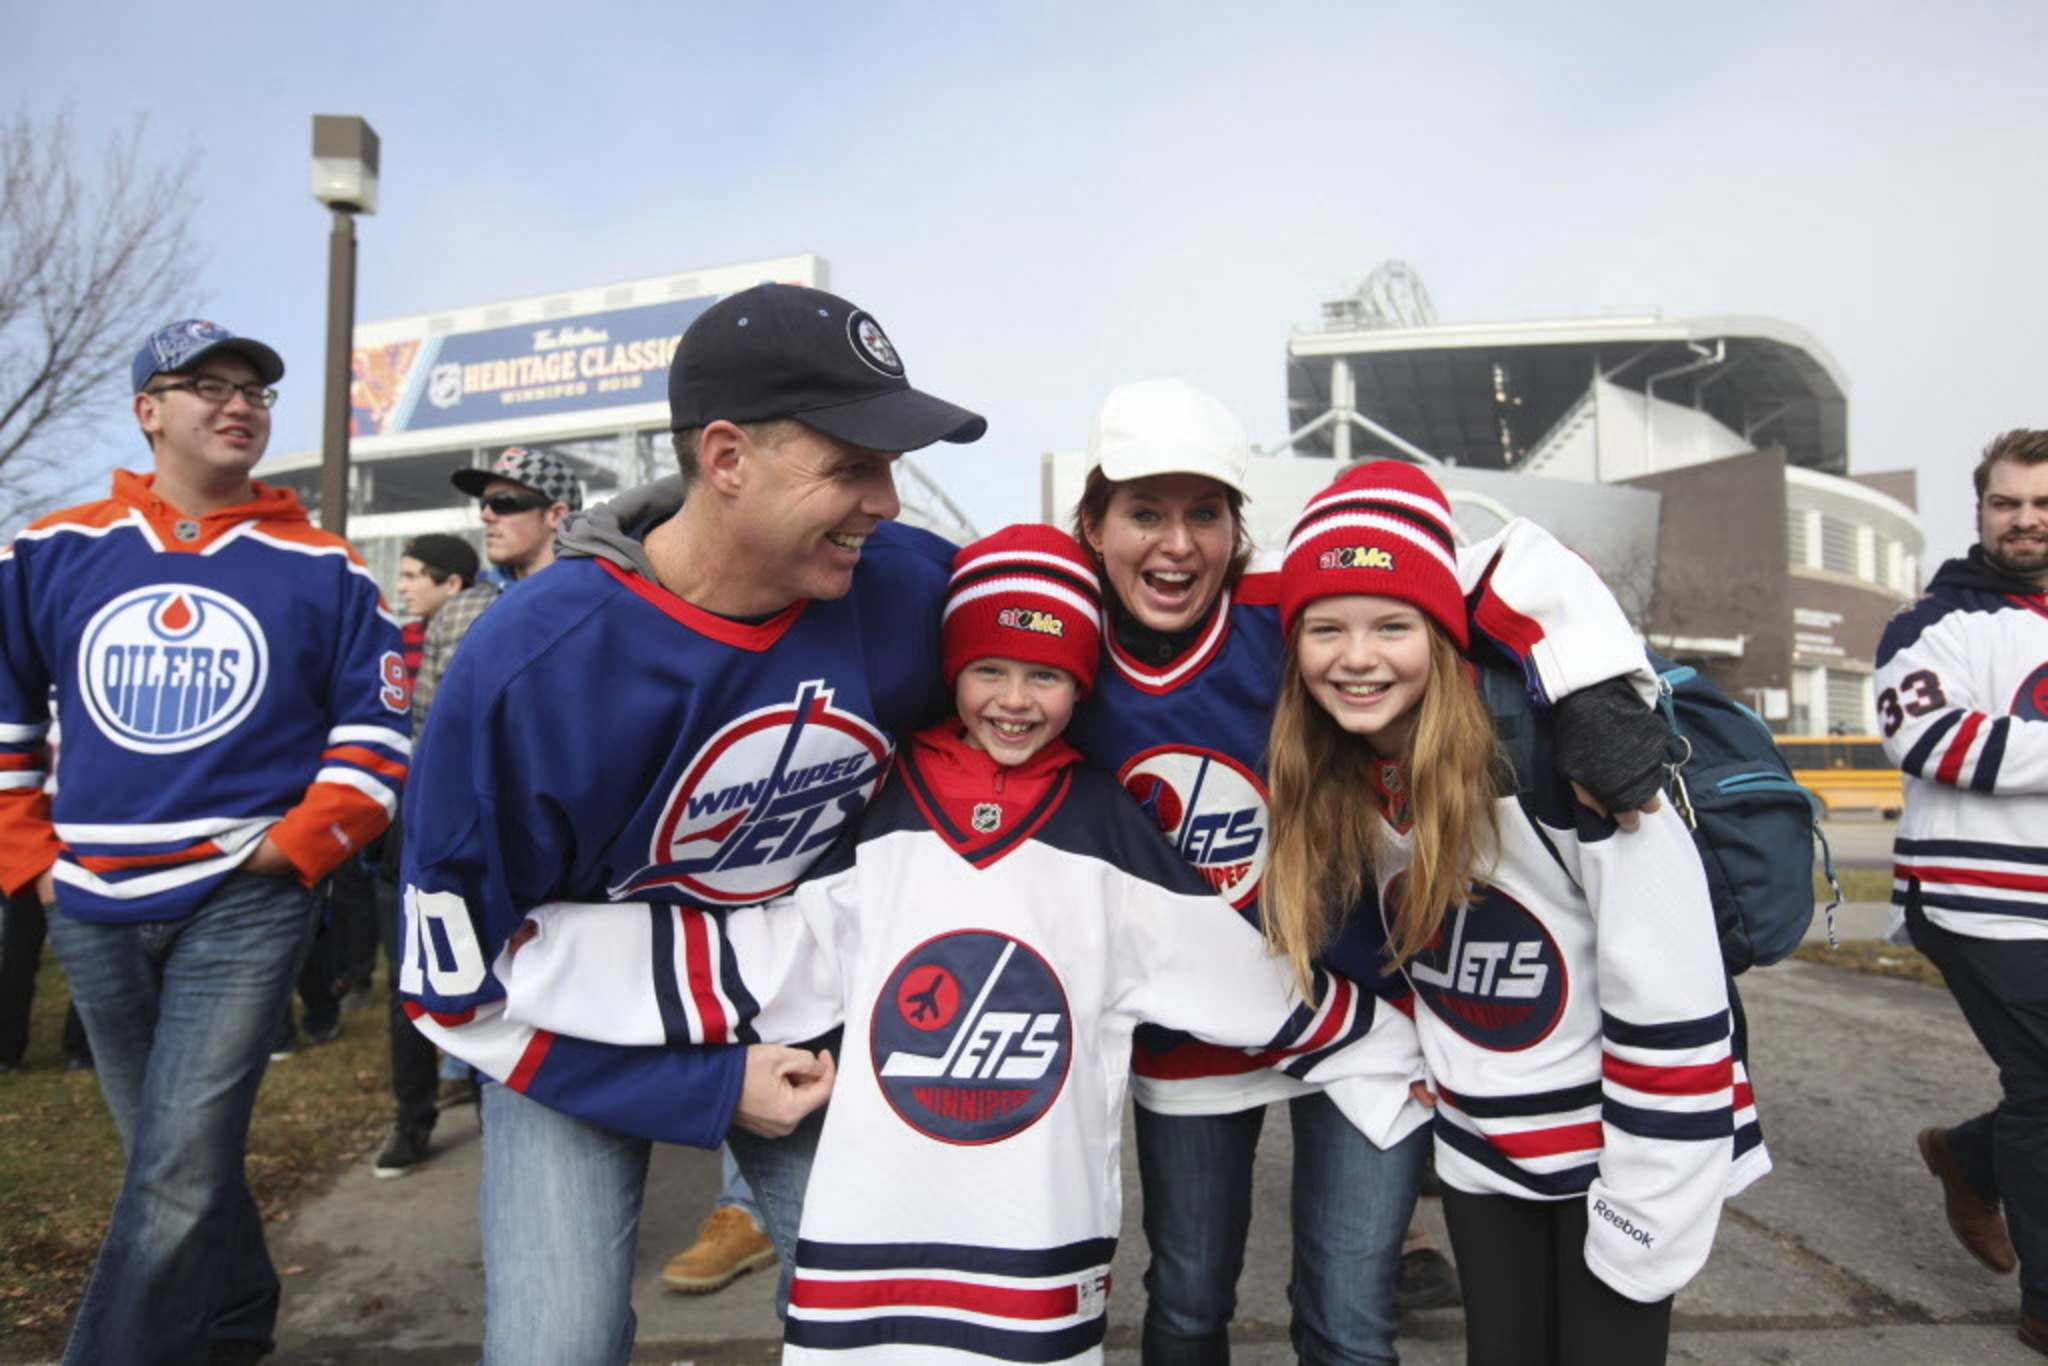 RUTH BONNEVILLE / WINNIPEG FREE PRESS</p><p>The MacInness family - Doug, Shannon, son Ben and daughter Abby - show off their excitement outside the stadium prior to the start of the alumni game Saturday. </p>